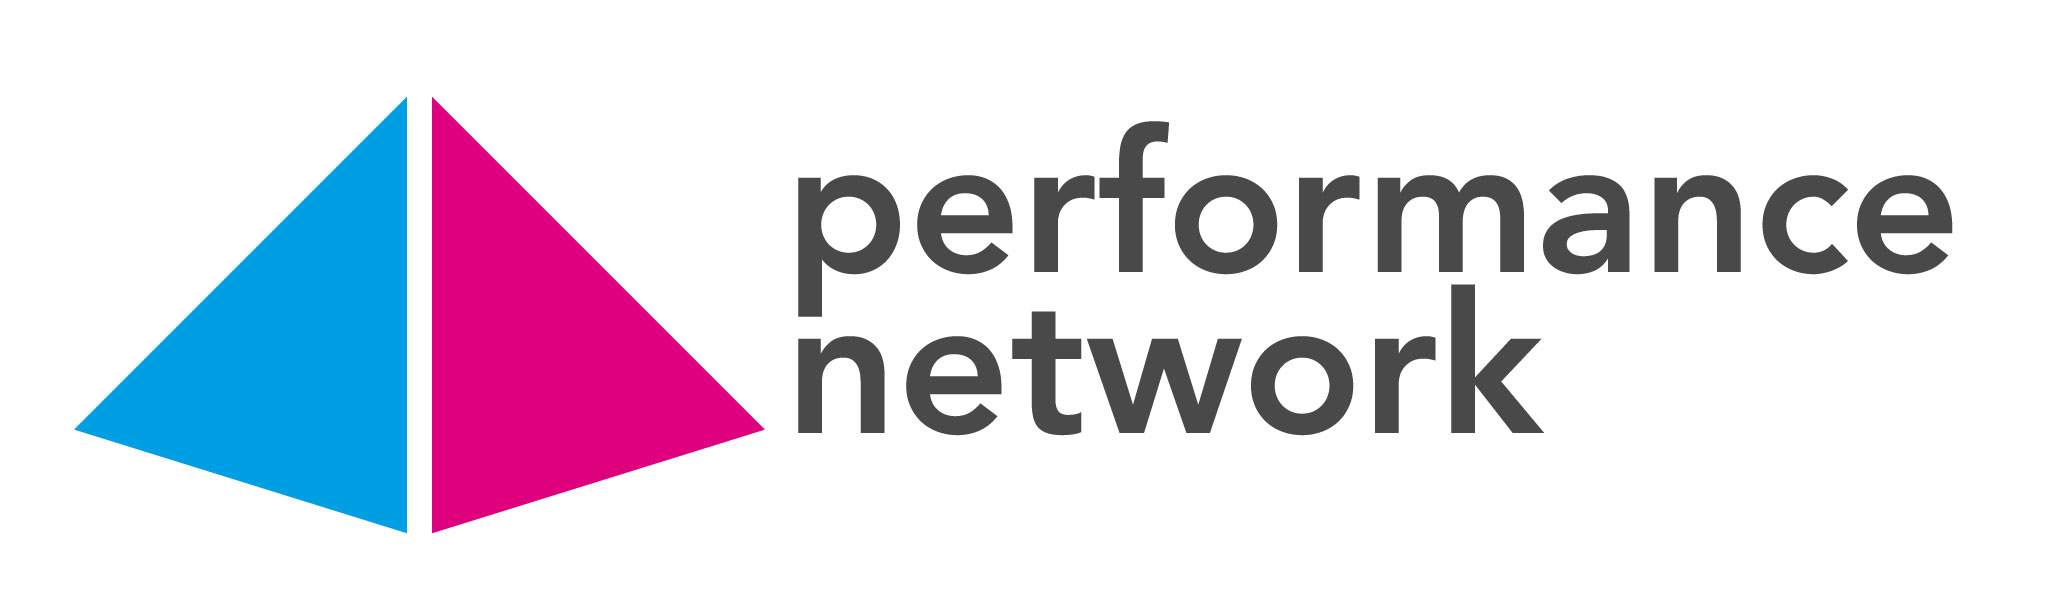 uppr Performance Network Logo